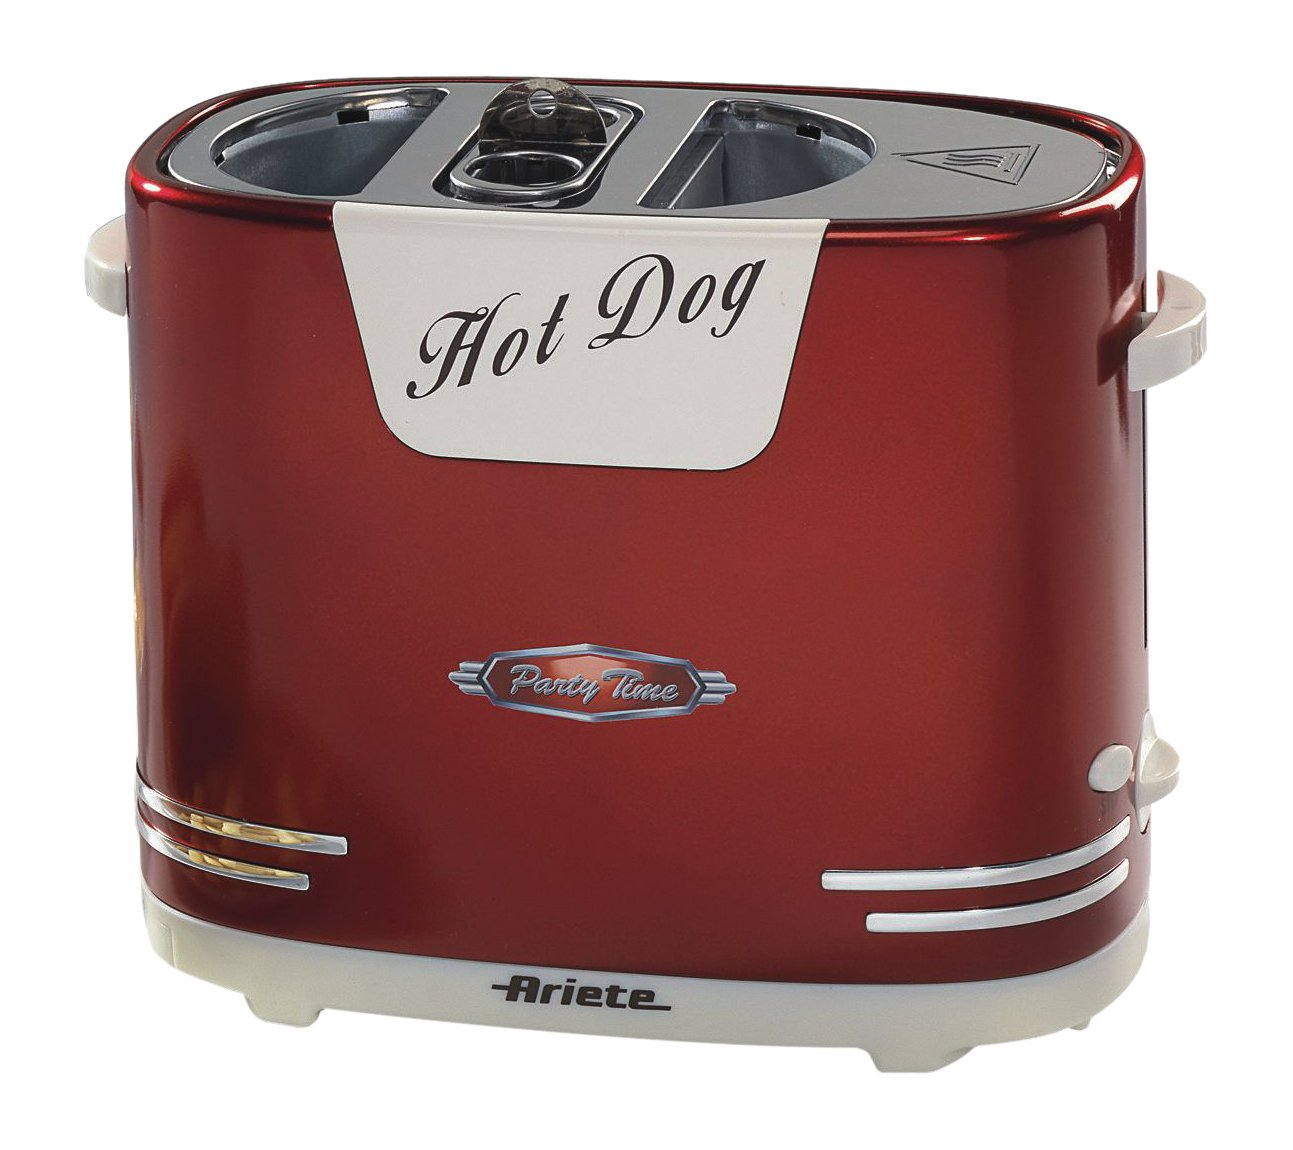 Ariete Party Time 186 Hot Dog Maker by Ariete